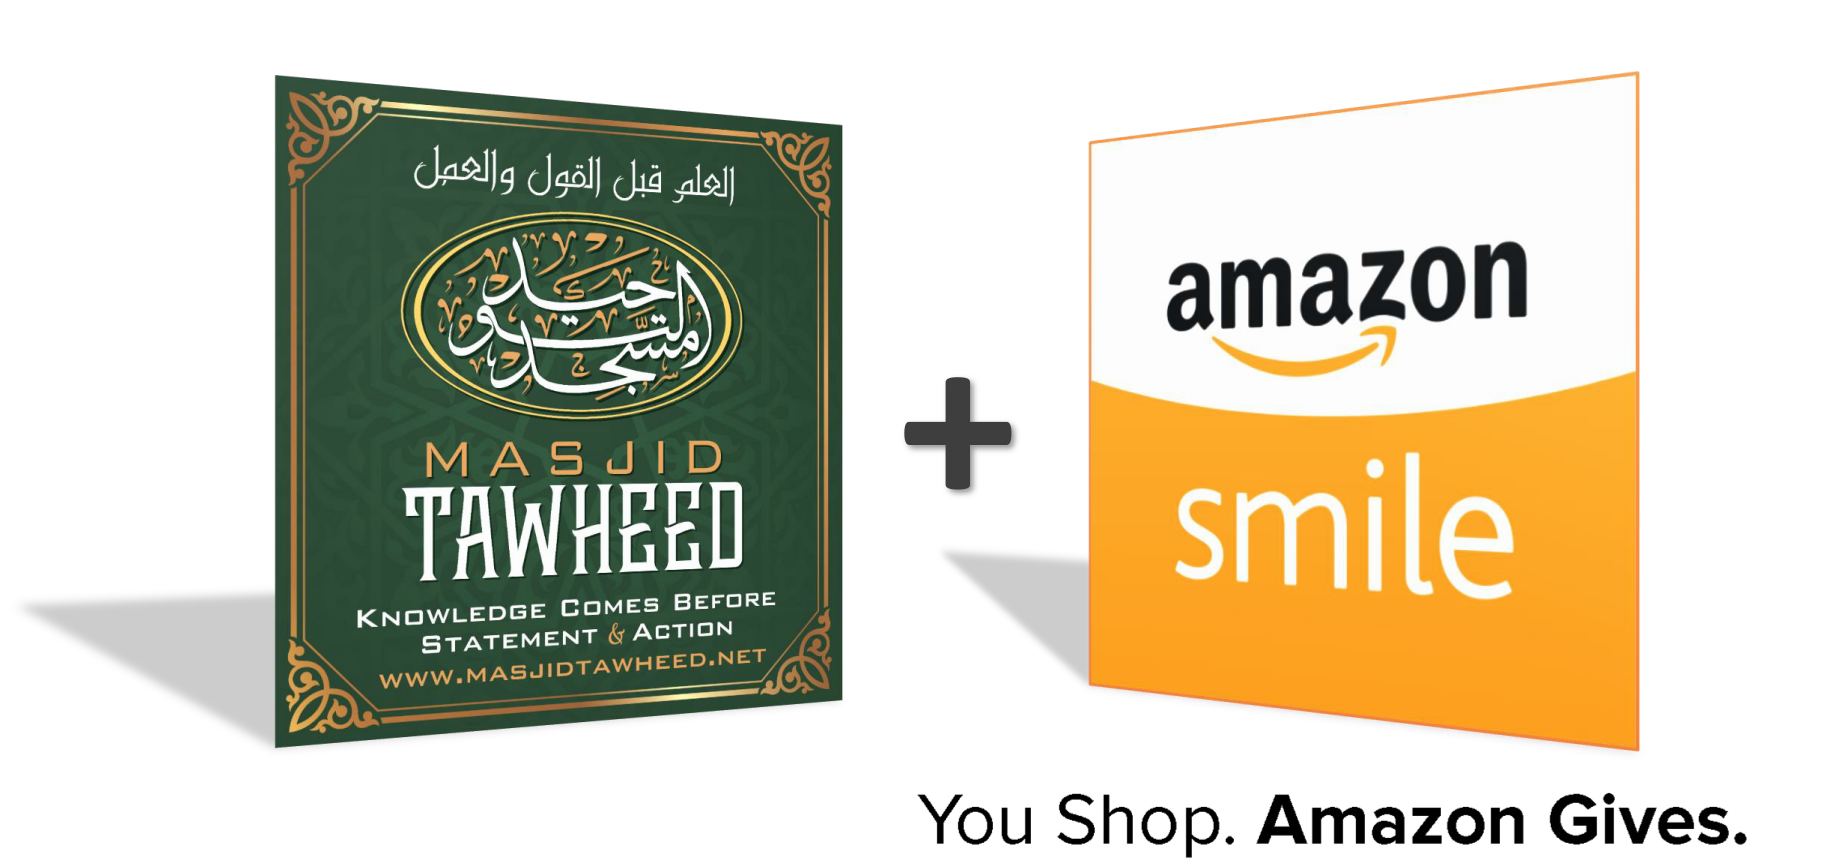 Donate to Masjid Tawheed with Amazon Smile - You Shop. Amazon Gives.